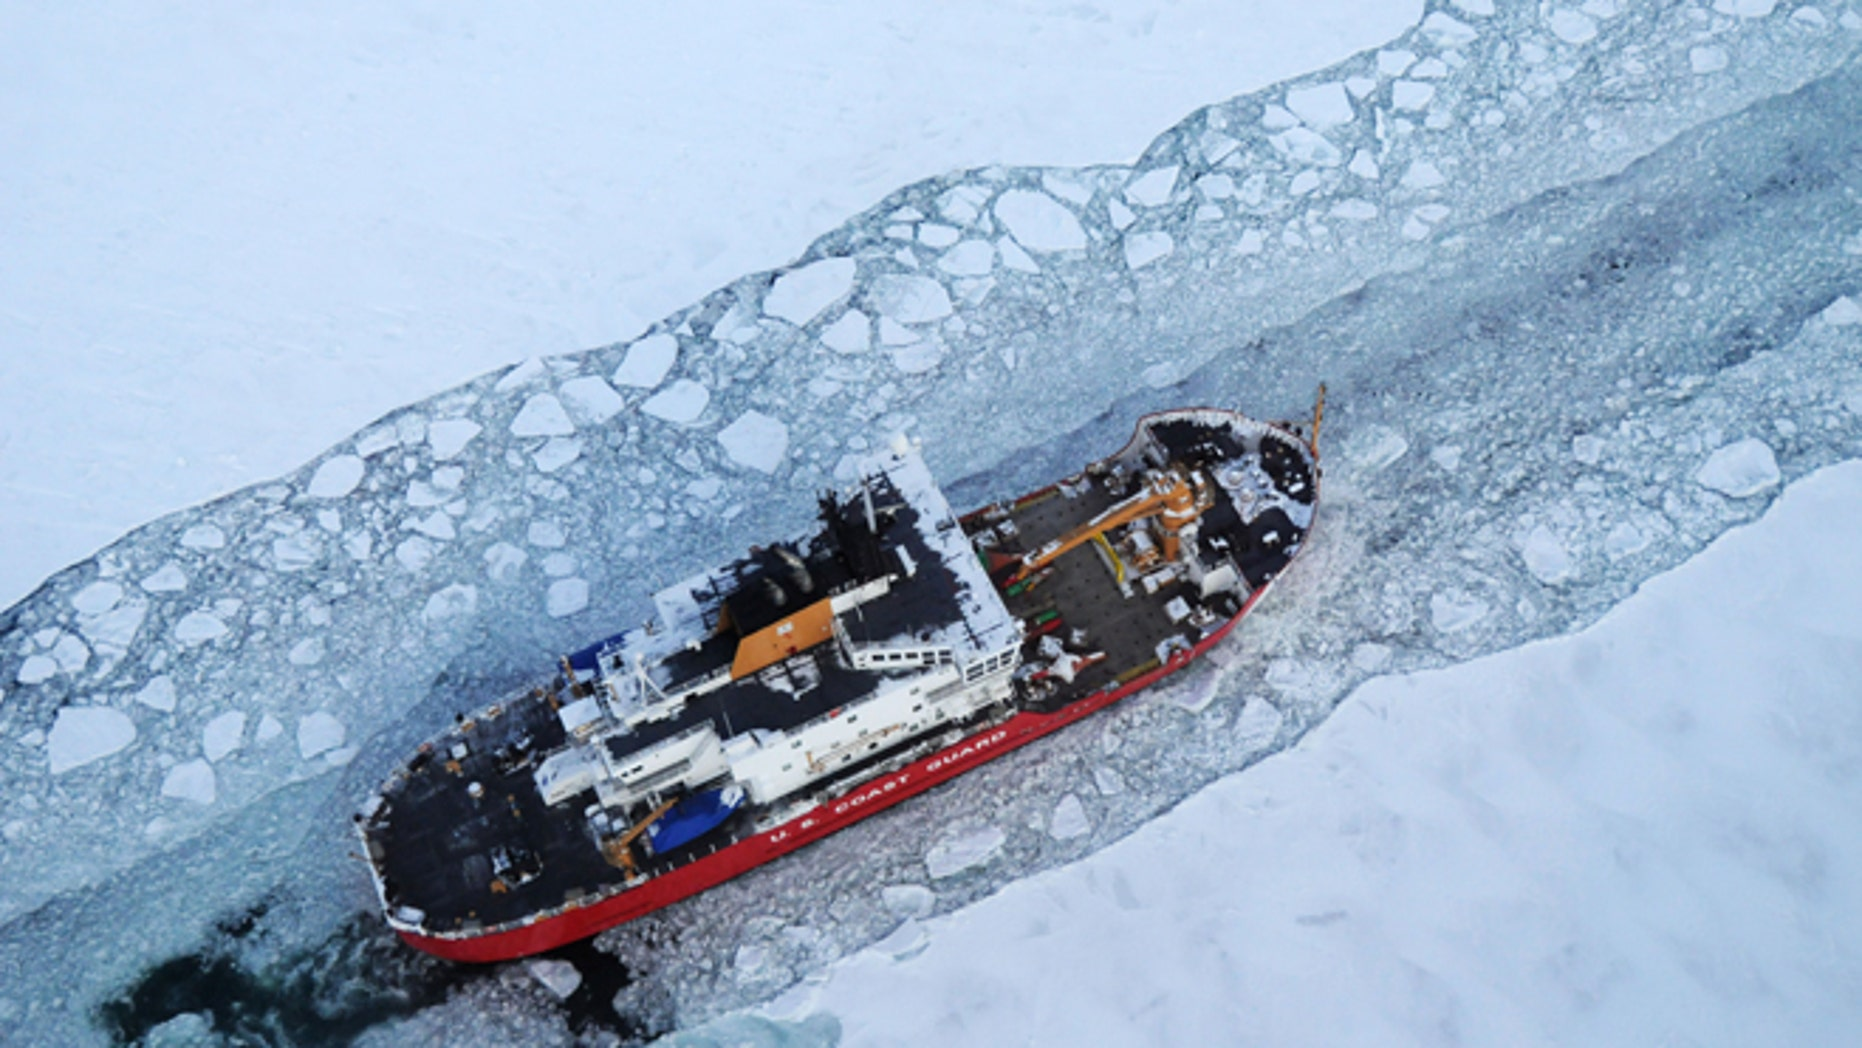 Dec. 26, 2013: In this photo provided by the U.S. Coast Guard the icebreaker Mackinaw maintains a shipping lane on the St. Marys River linking Lakes Superior and Huron.